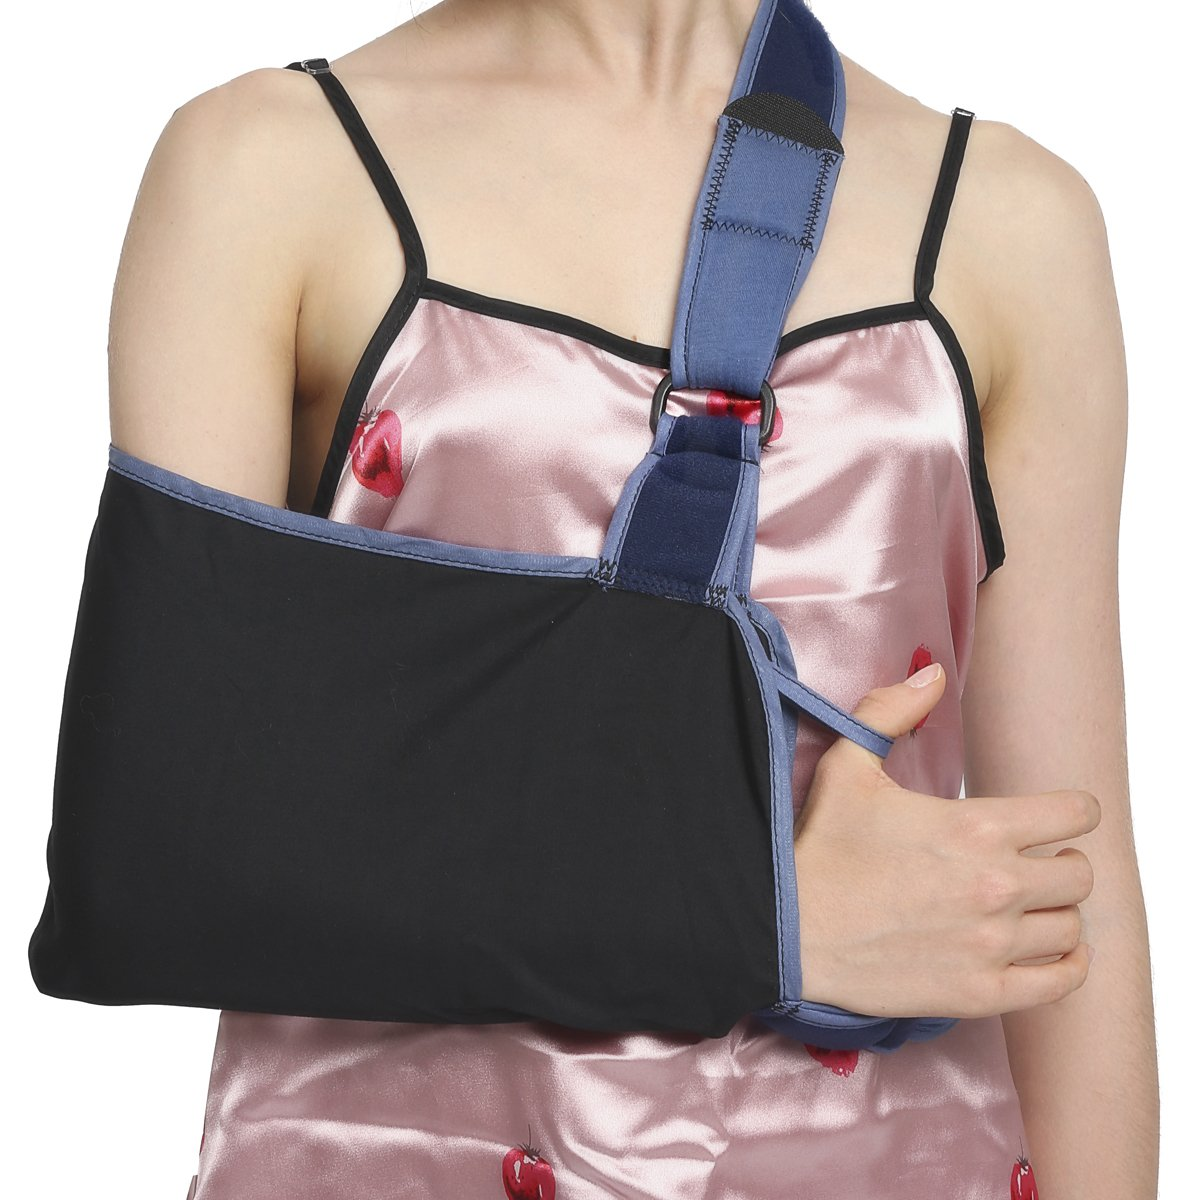 Velpeau Arm Sling with Waist Strap - Can Be Used During Sleep - Shoulder & Rotator Cuff Support - Adjustable Medical Sling for Subluxation, Dislocation, Sprains, Strains & Tears (Medium)